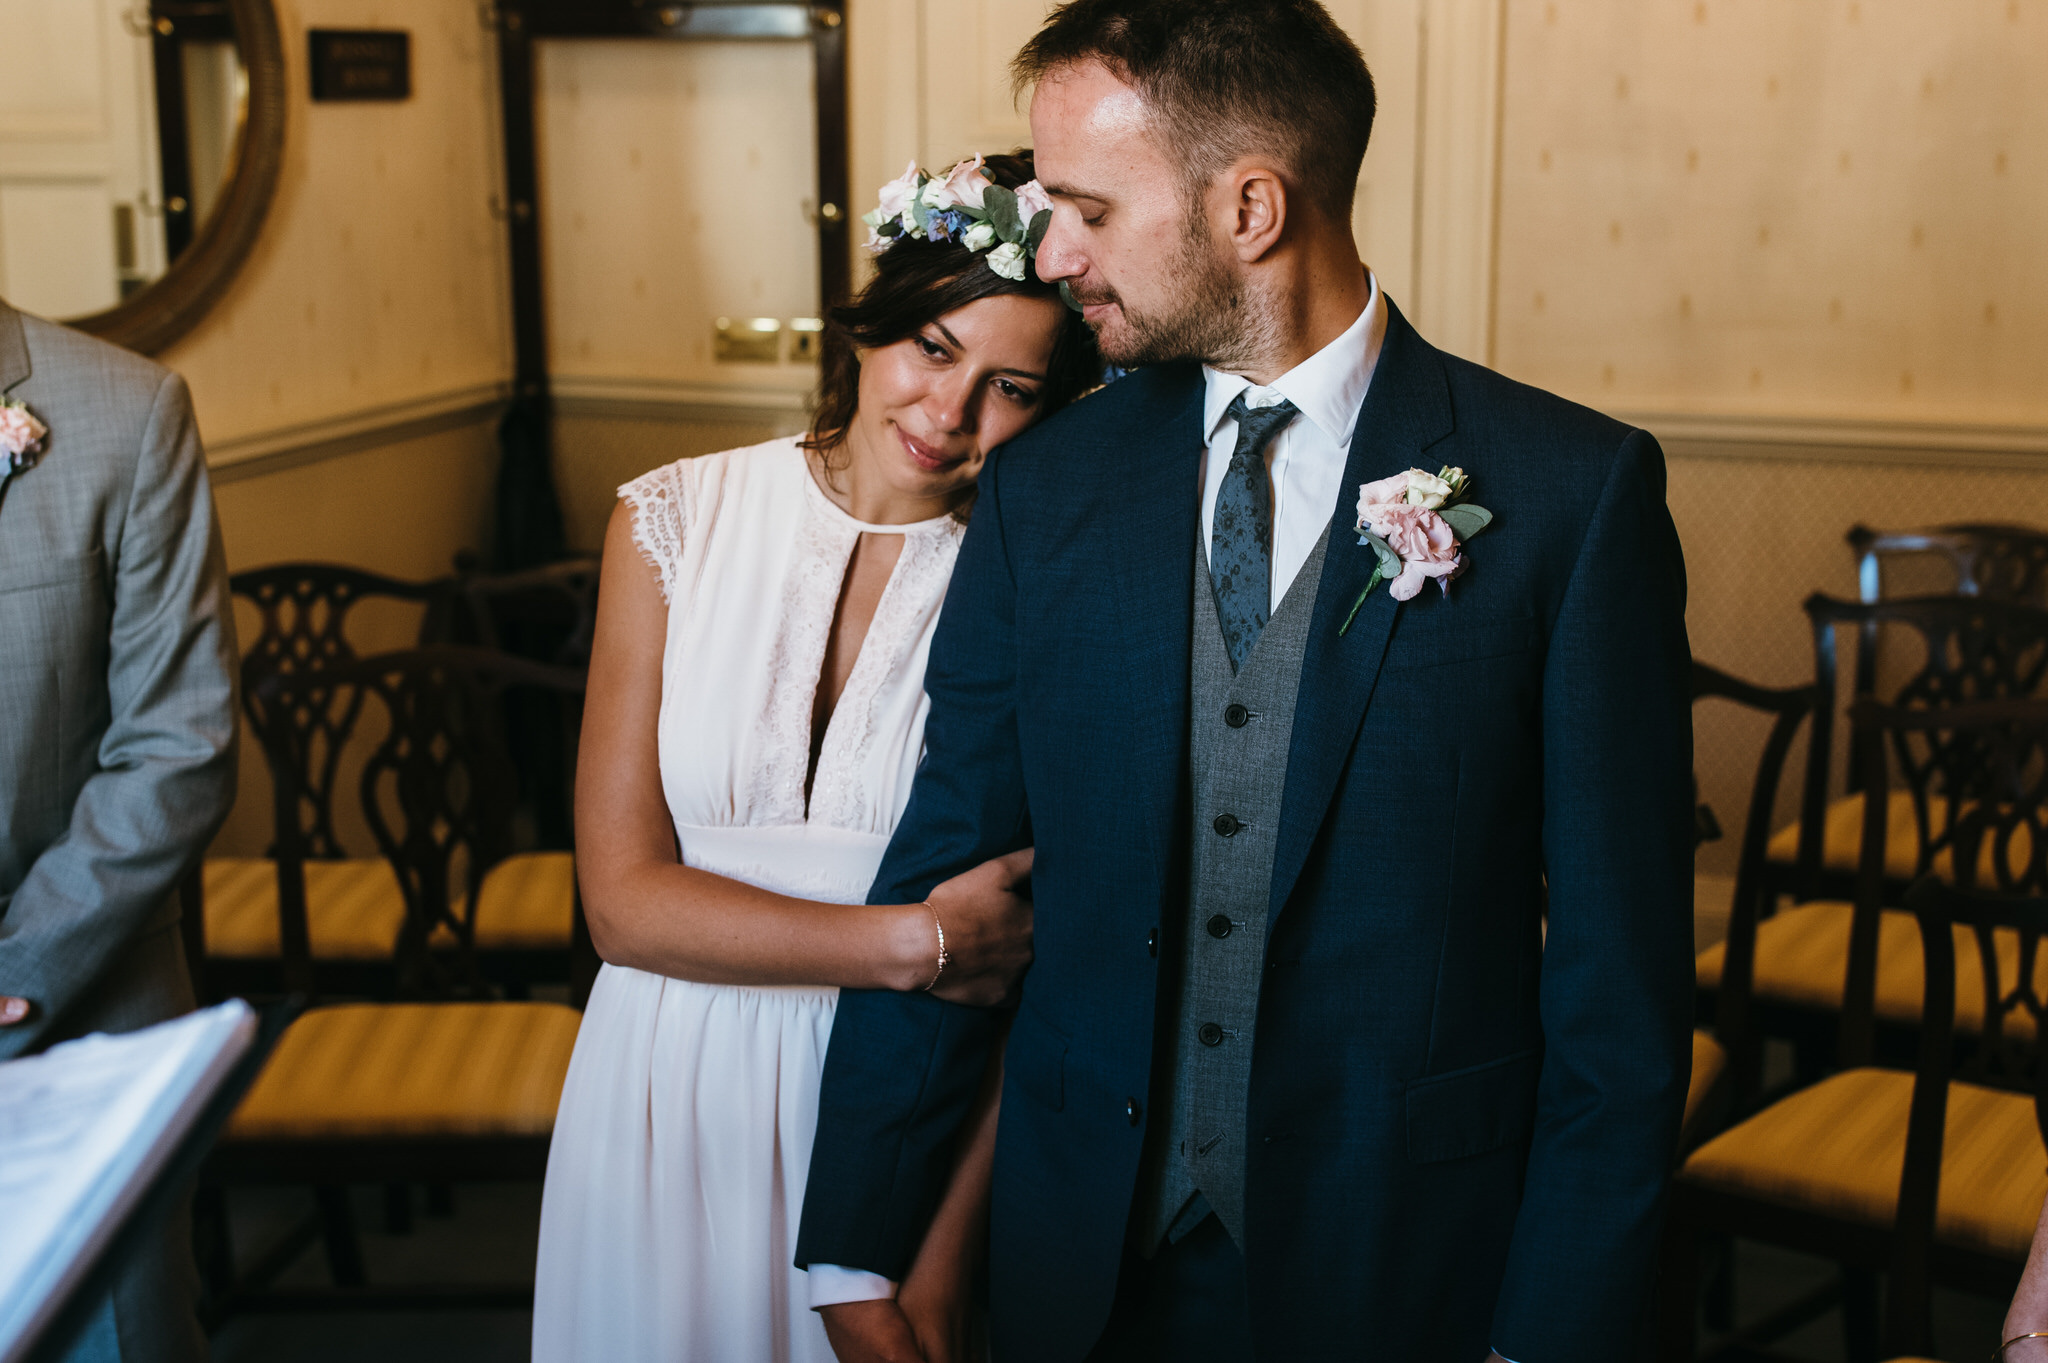 Bath guildhall intimate wedding photography 15